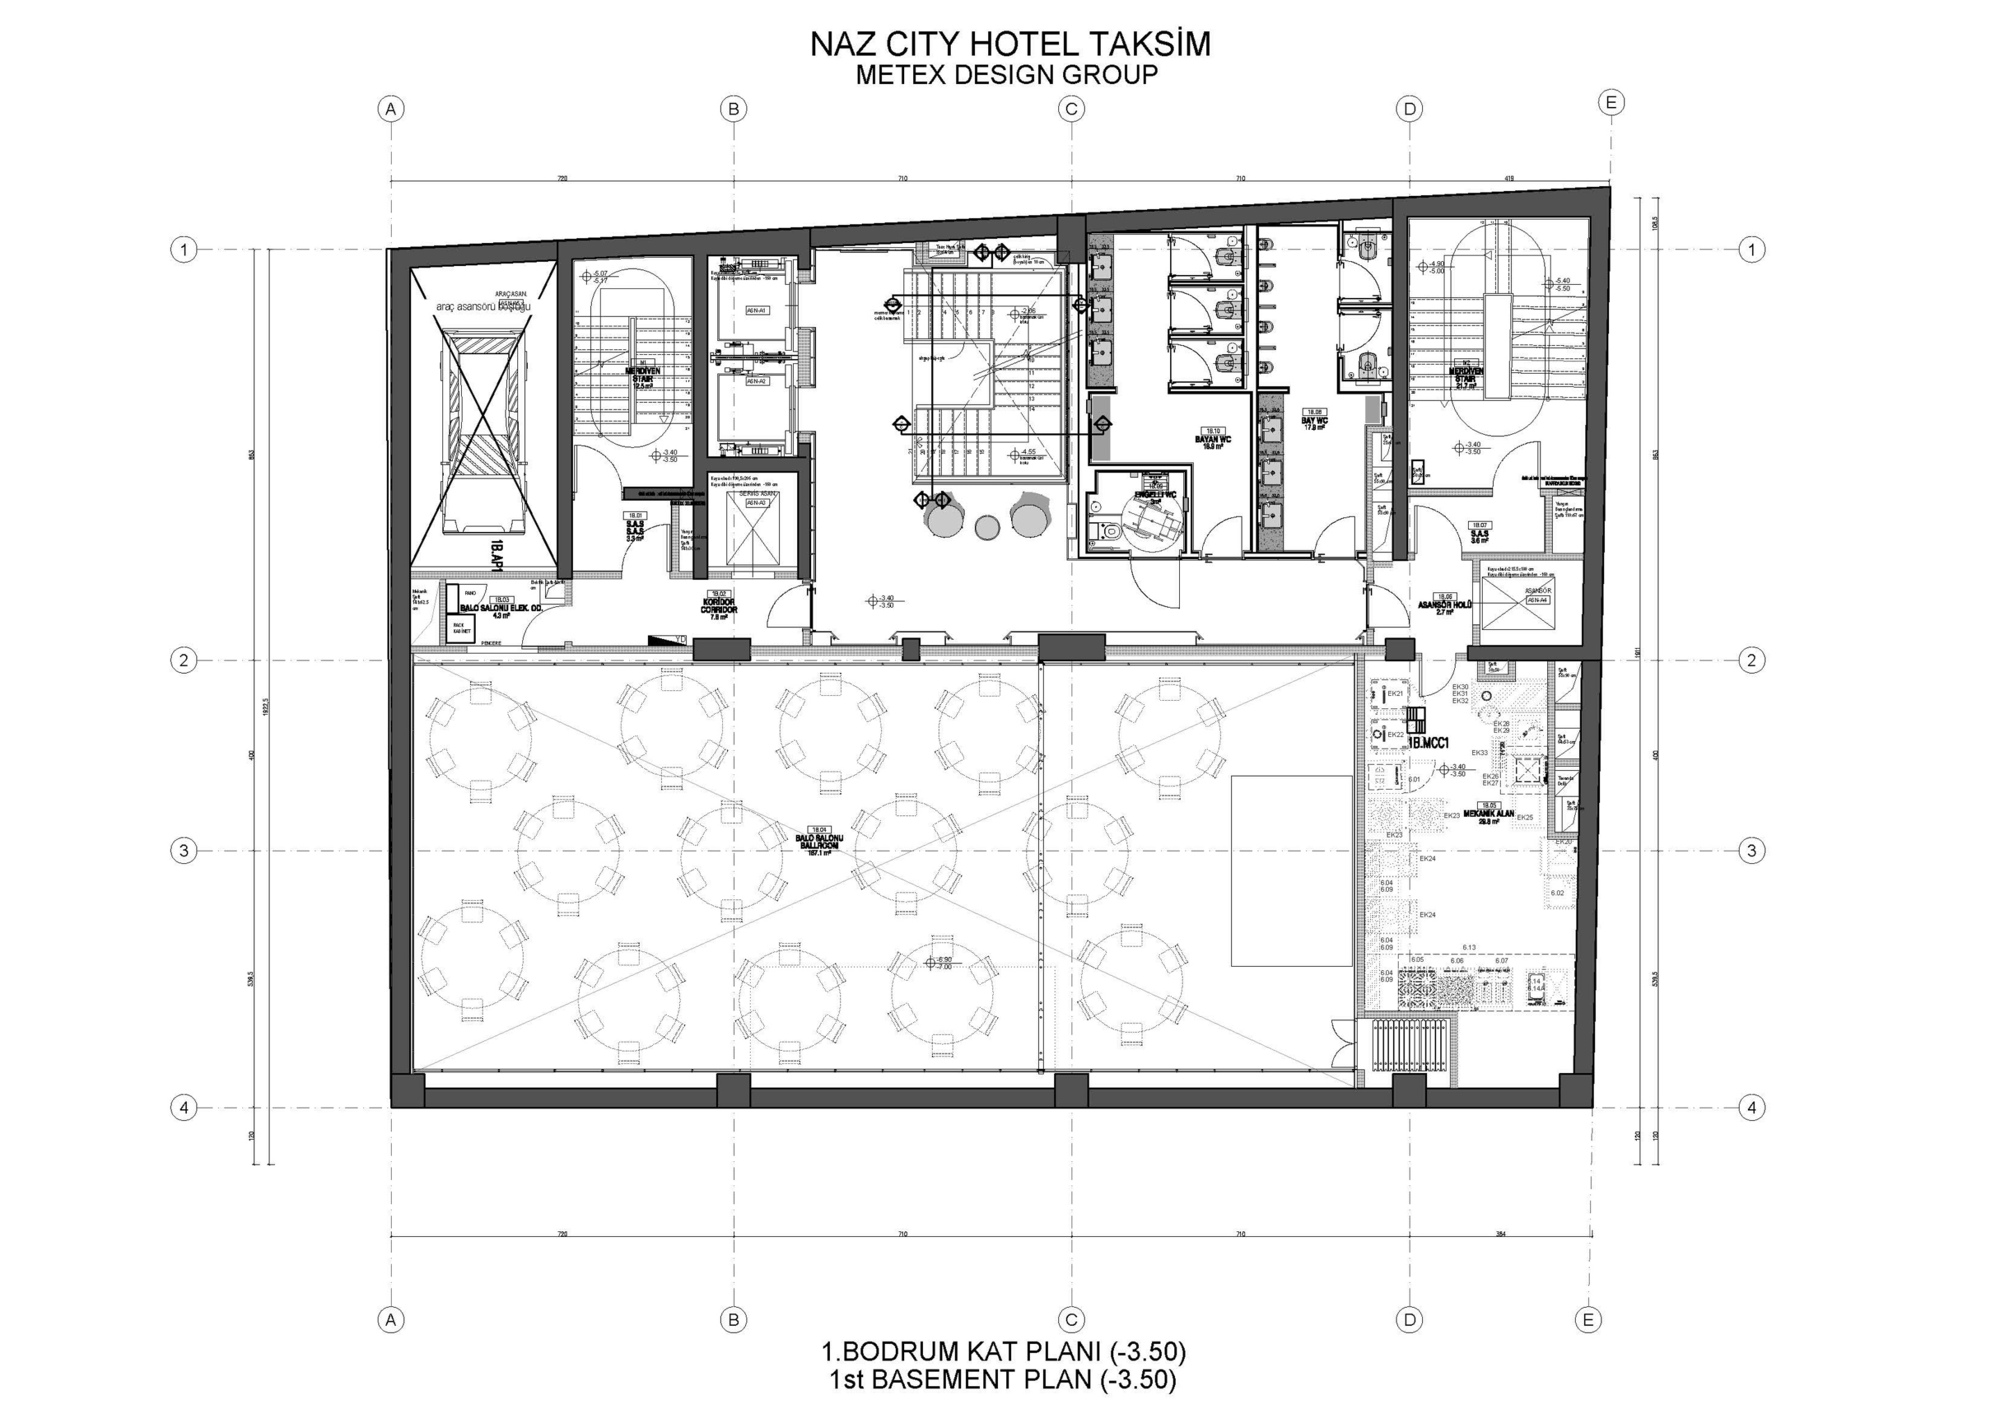 Gallery of naz city hotel taksim metex design group 35 for City hotel design